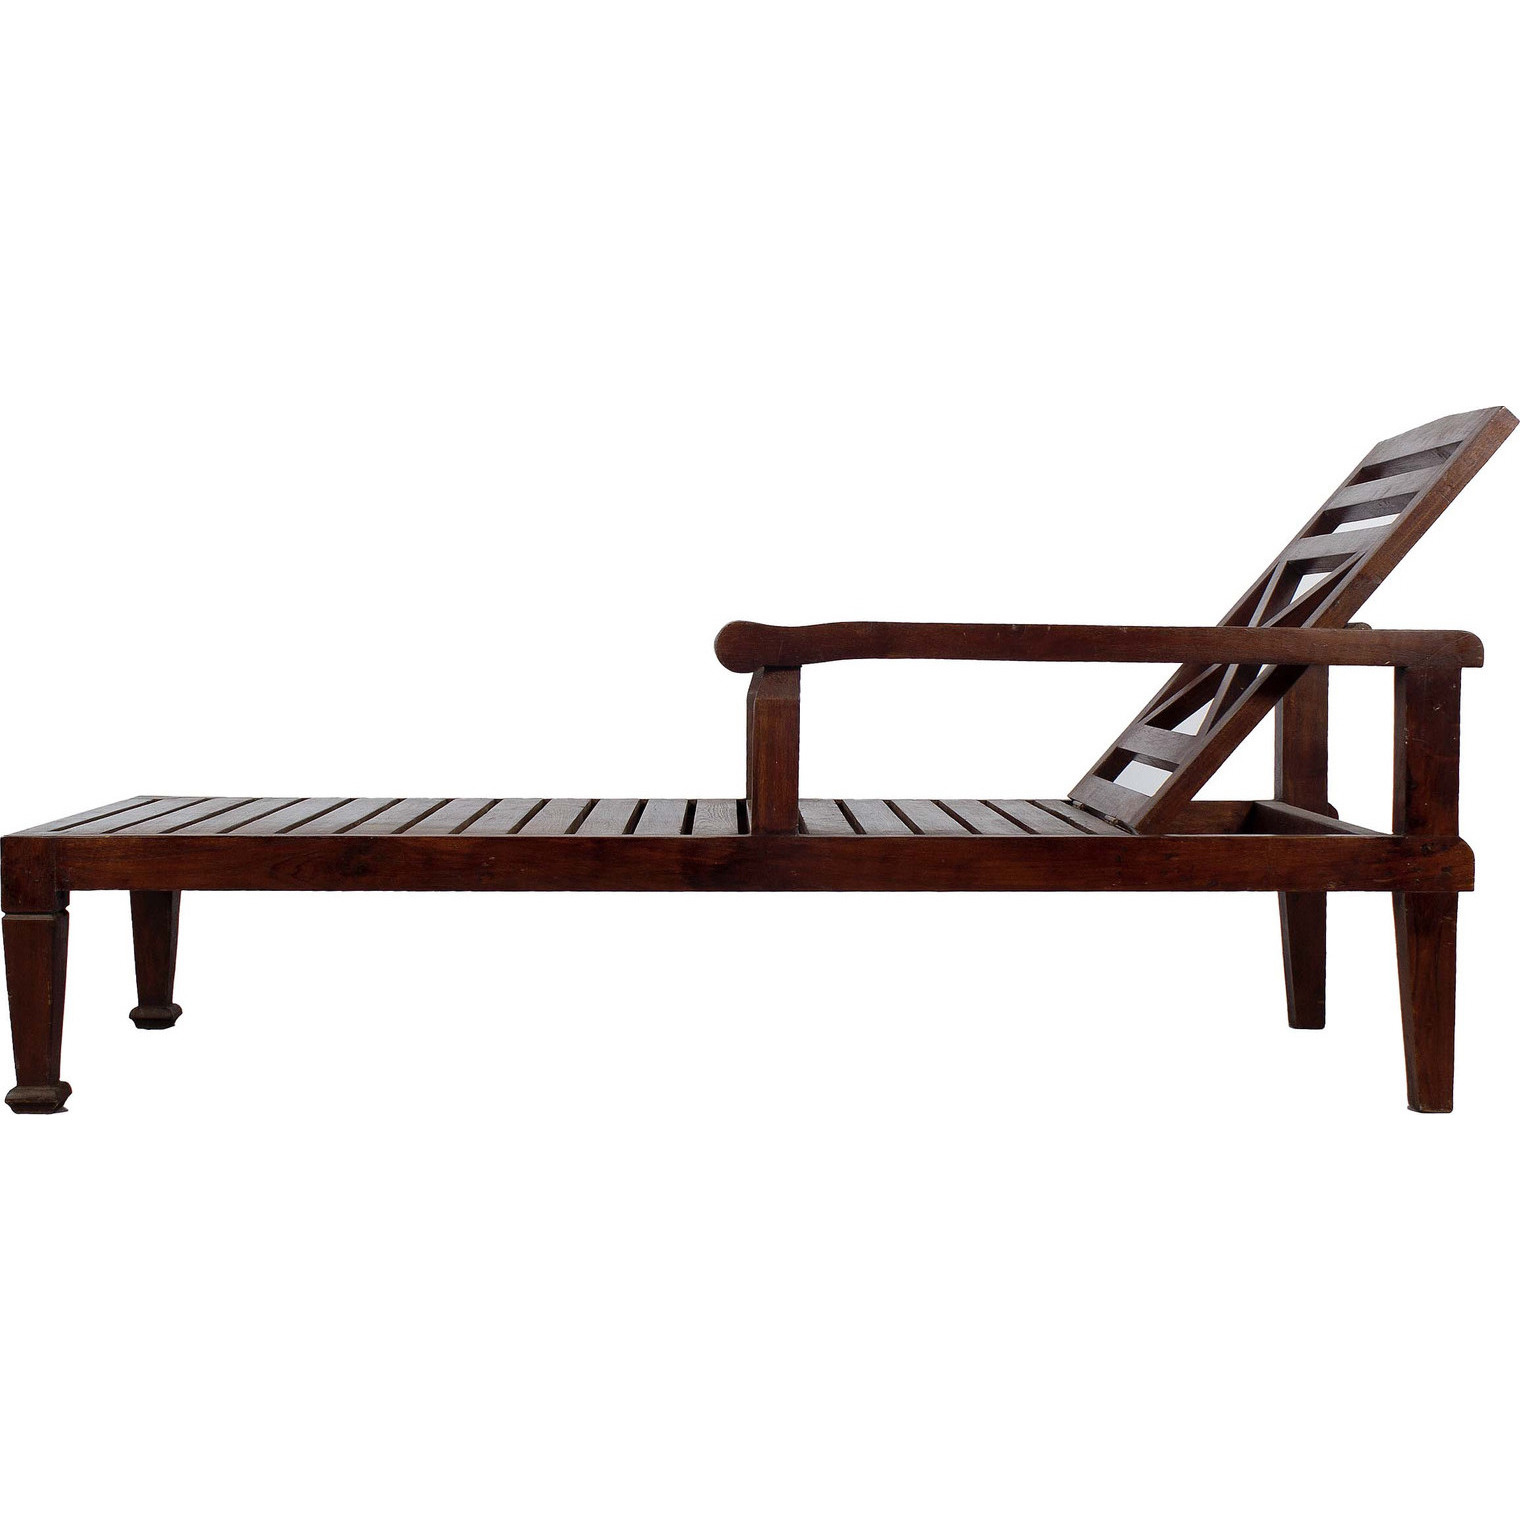 Buy line SOLID TEAK WOOD BEACH CHAISE LOUNGE CHAIRB DARK WOOD